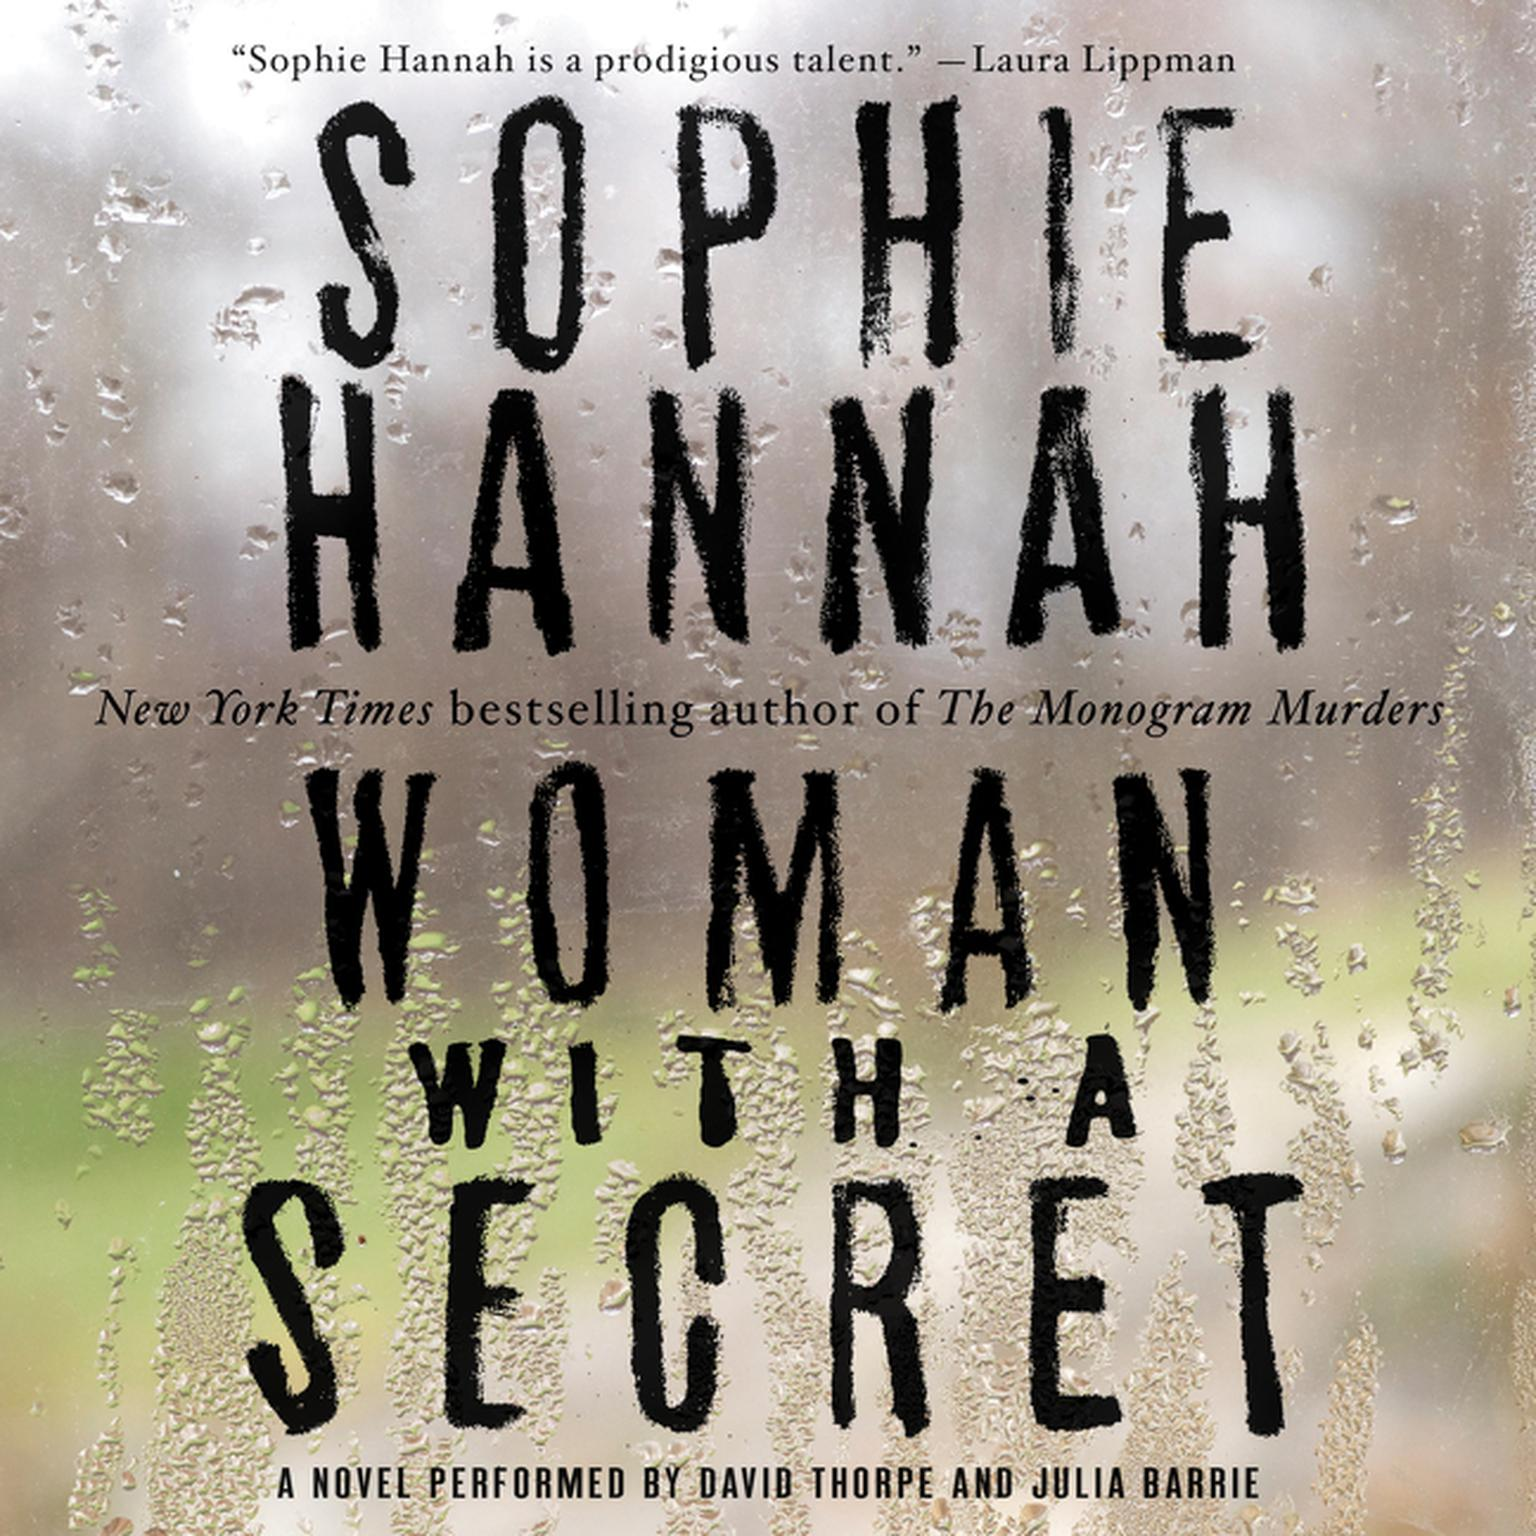 Printable Woman with a Secret: A Novel Audiobook Cover Art